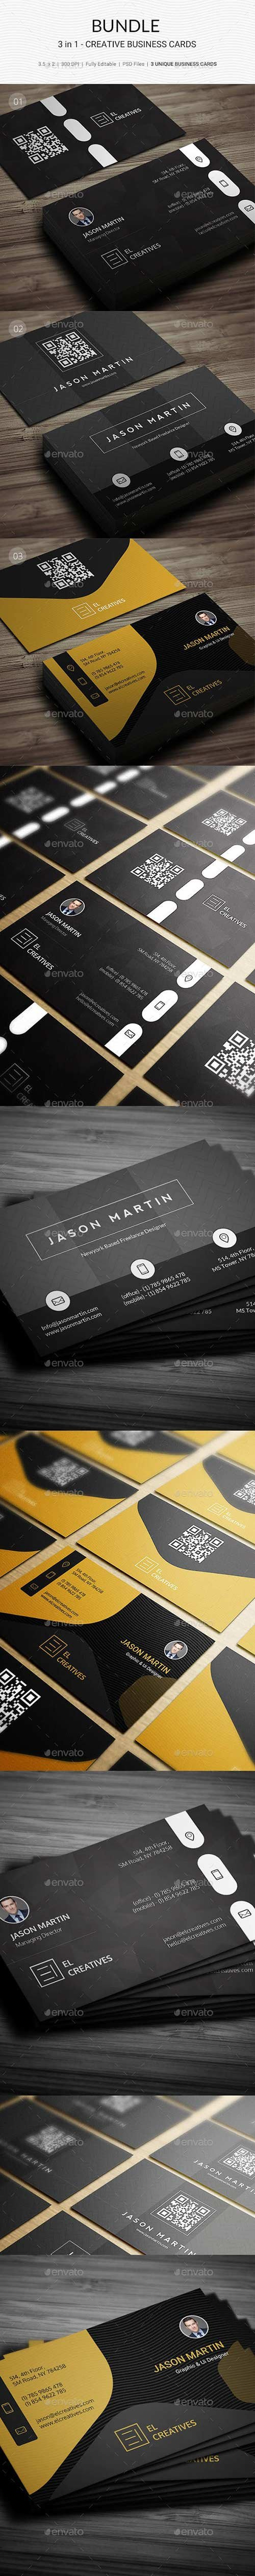 GraphicRiver Bundle 3 in 1 Creative Business Cards 180 21943110